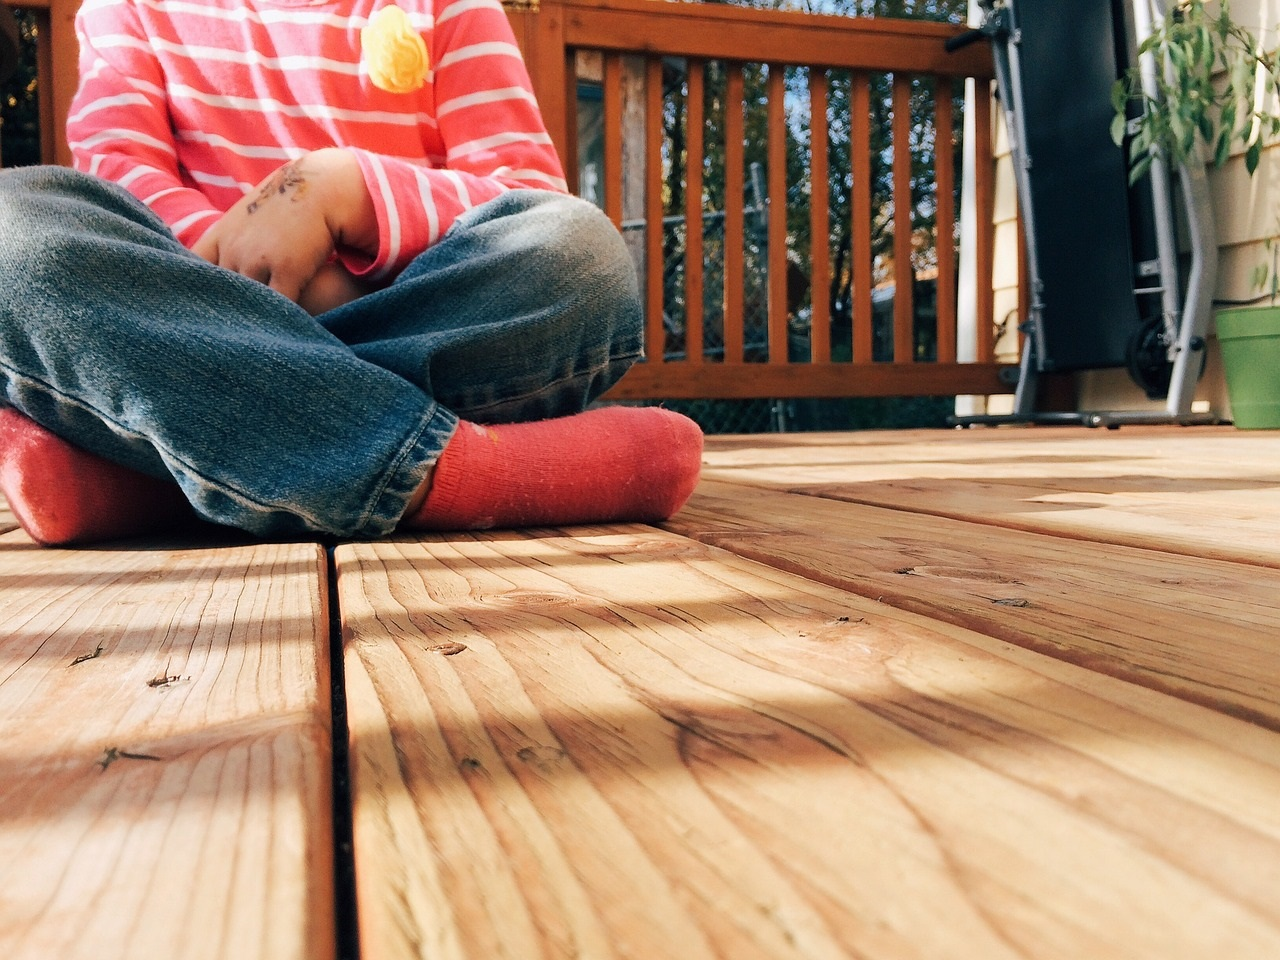 Child wearing jeans and red socks sitting on wooden deck